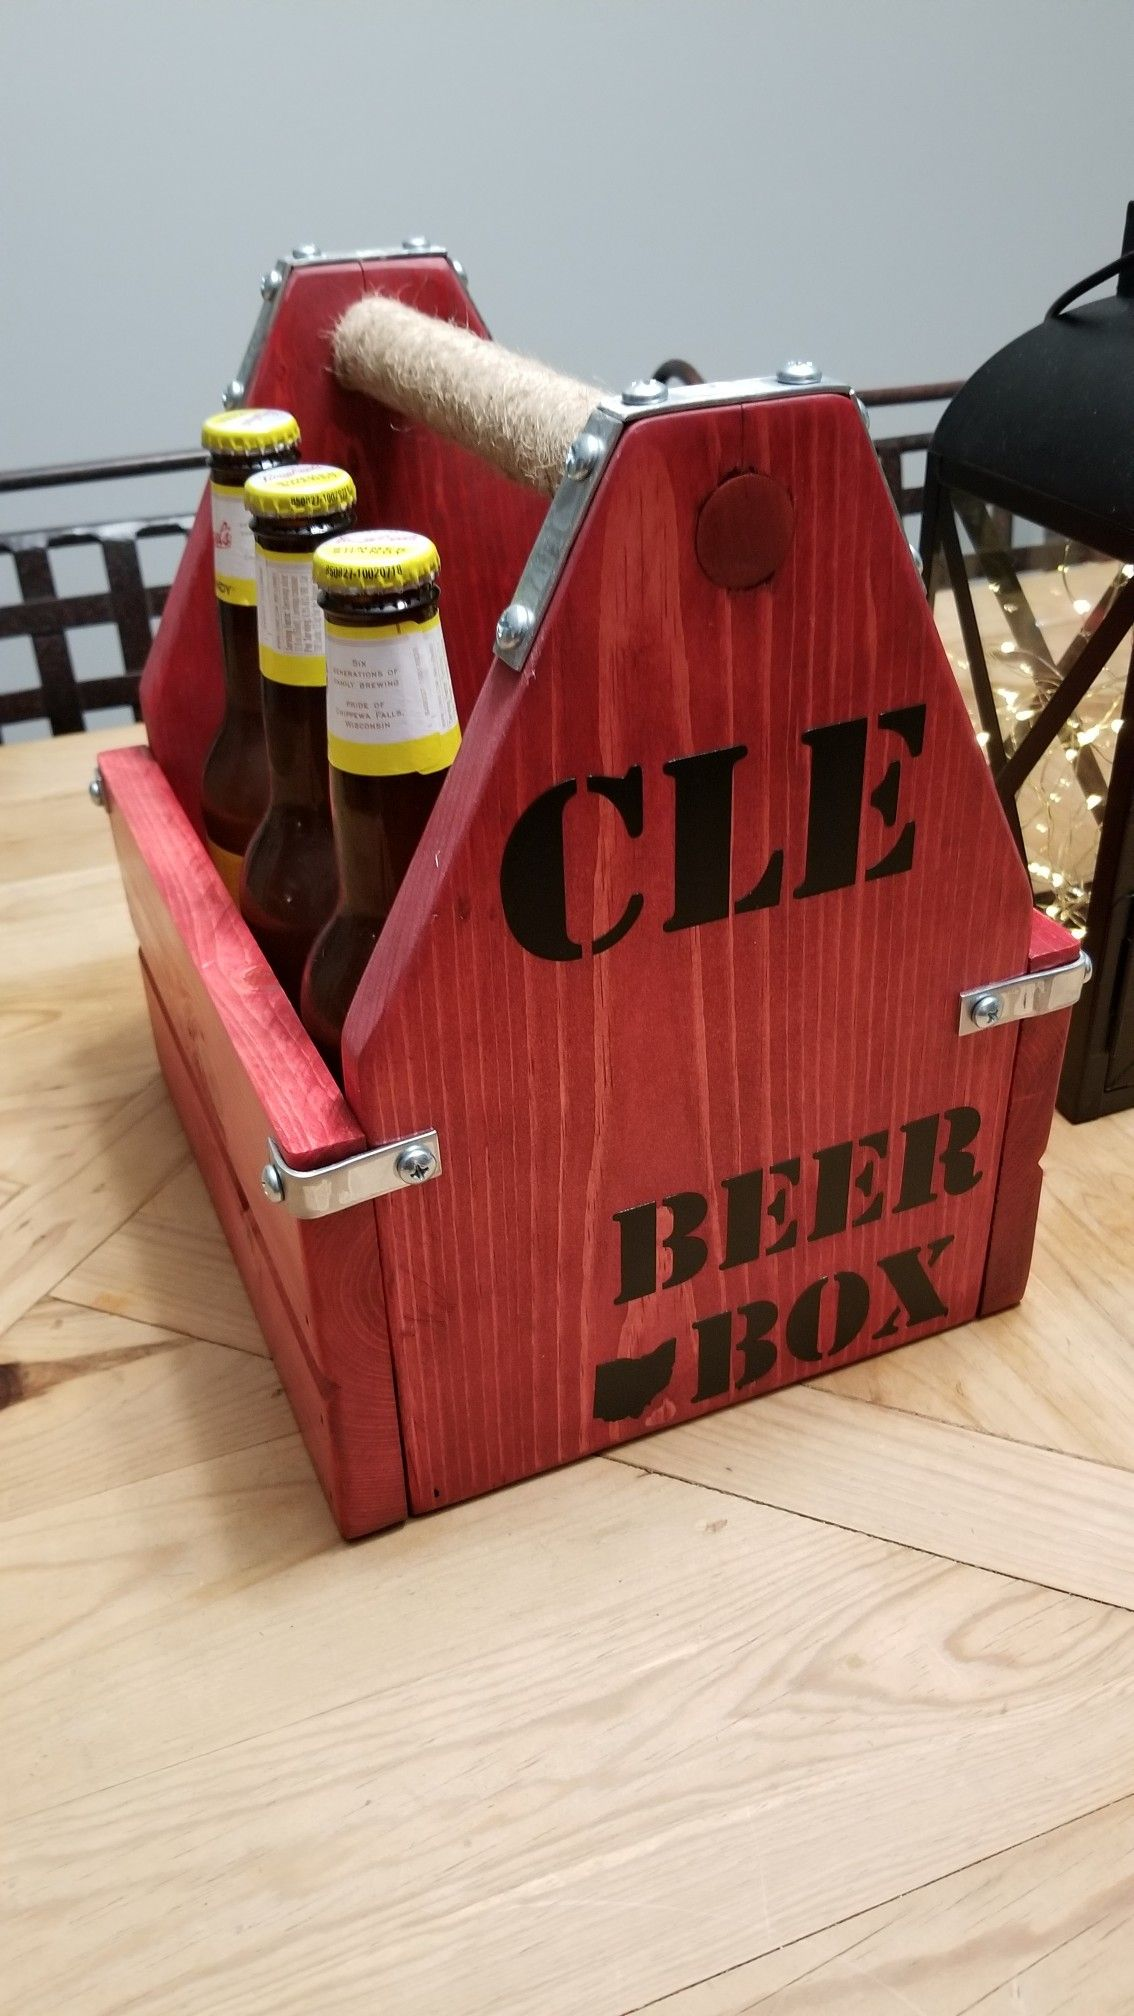 Cle Ohio Red Barn Beer Box Beer Box Vinyl Lettering Red Barn